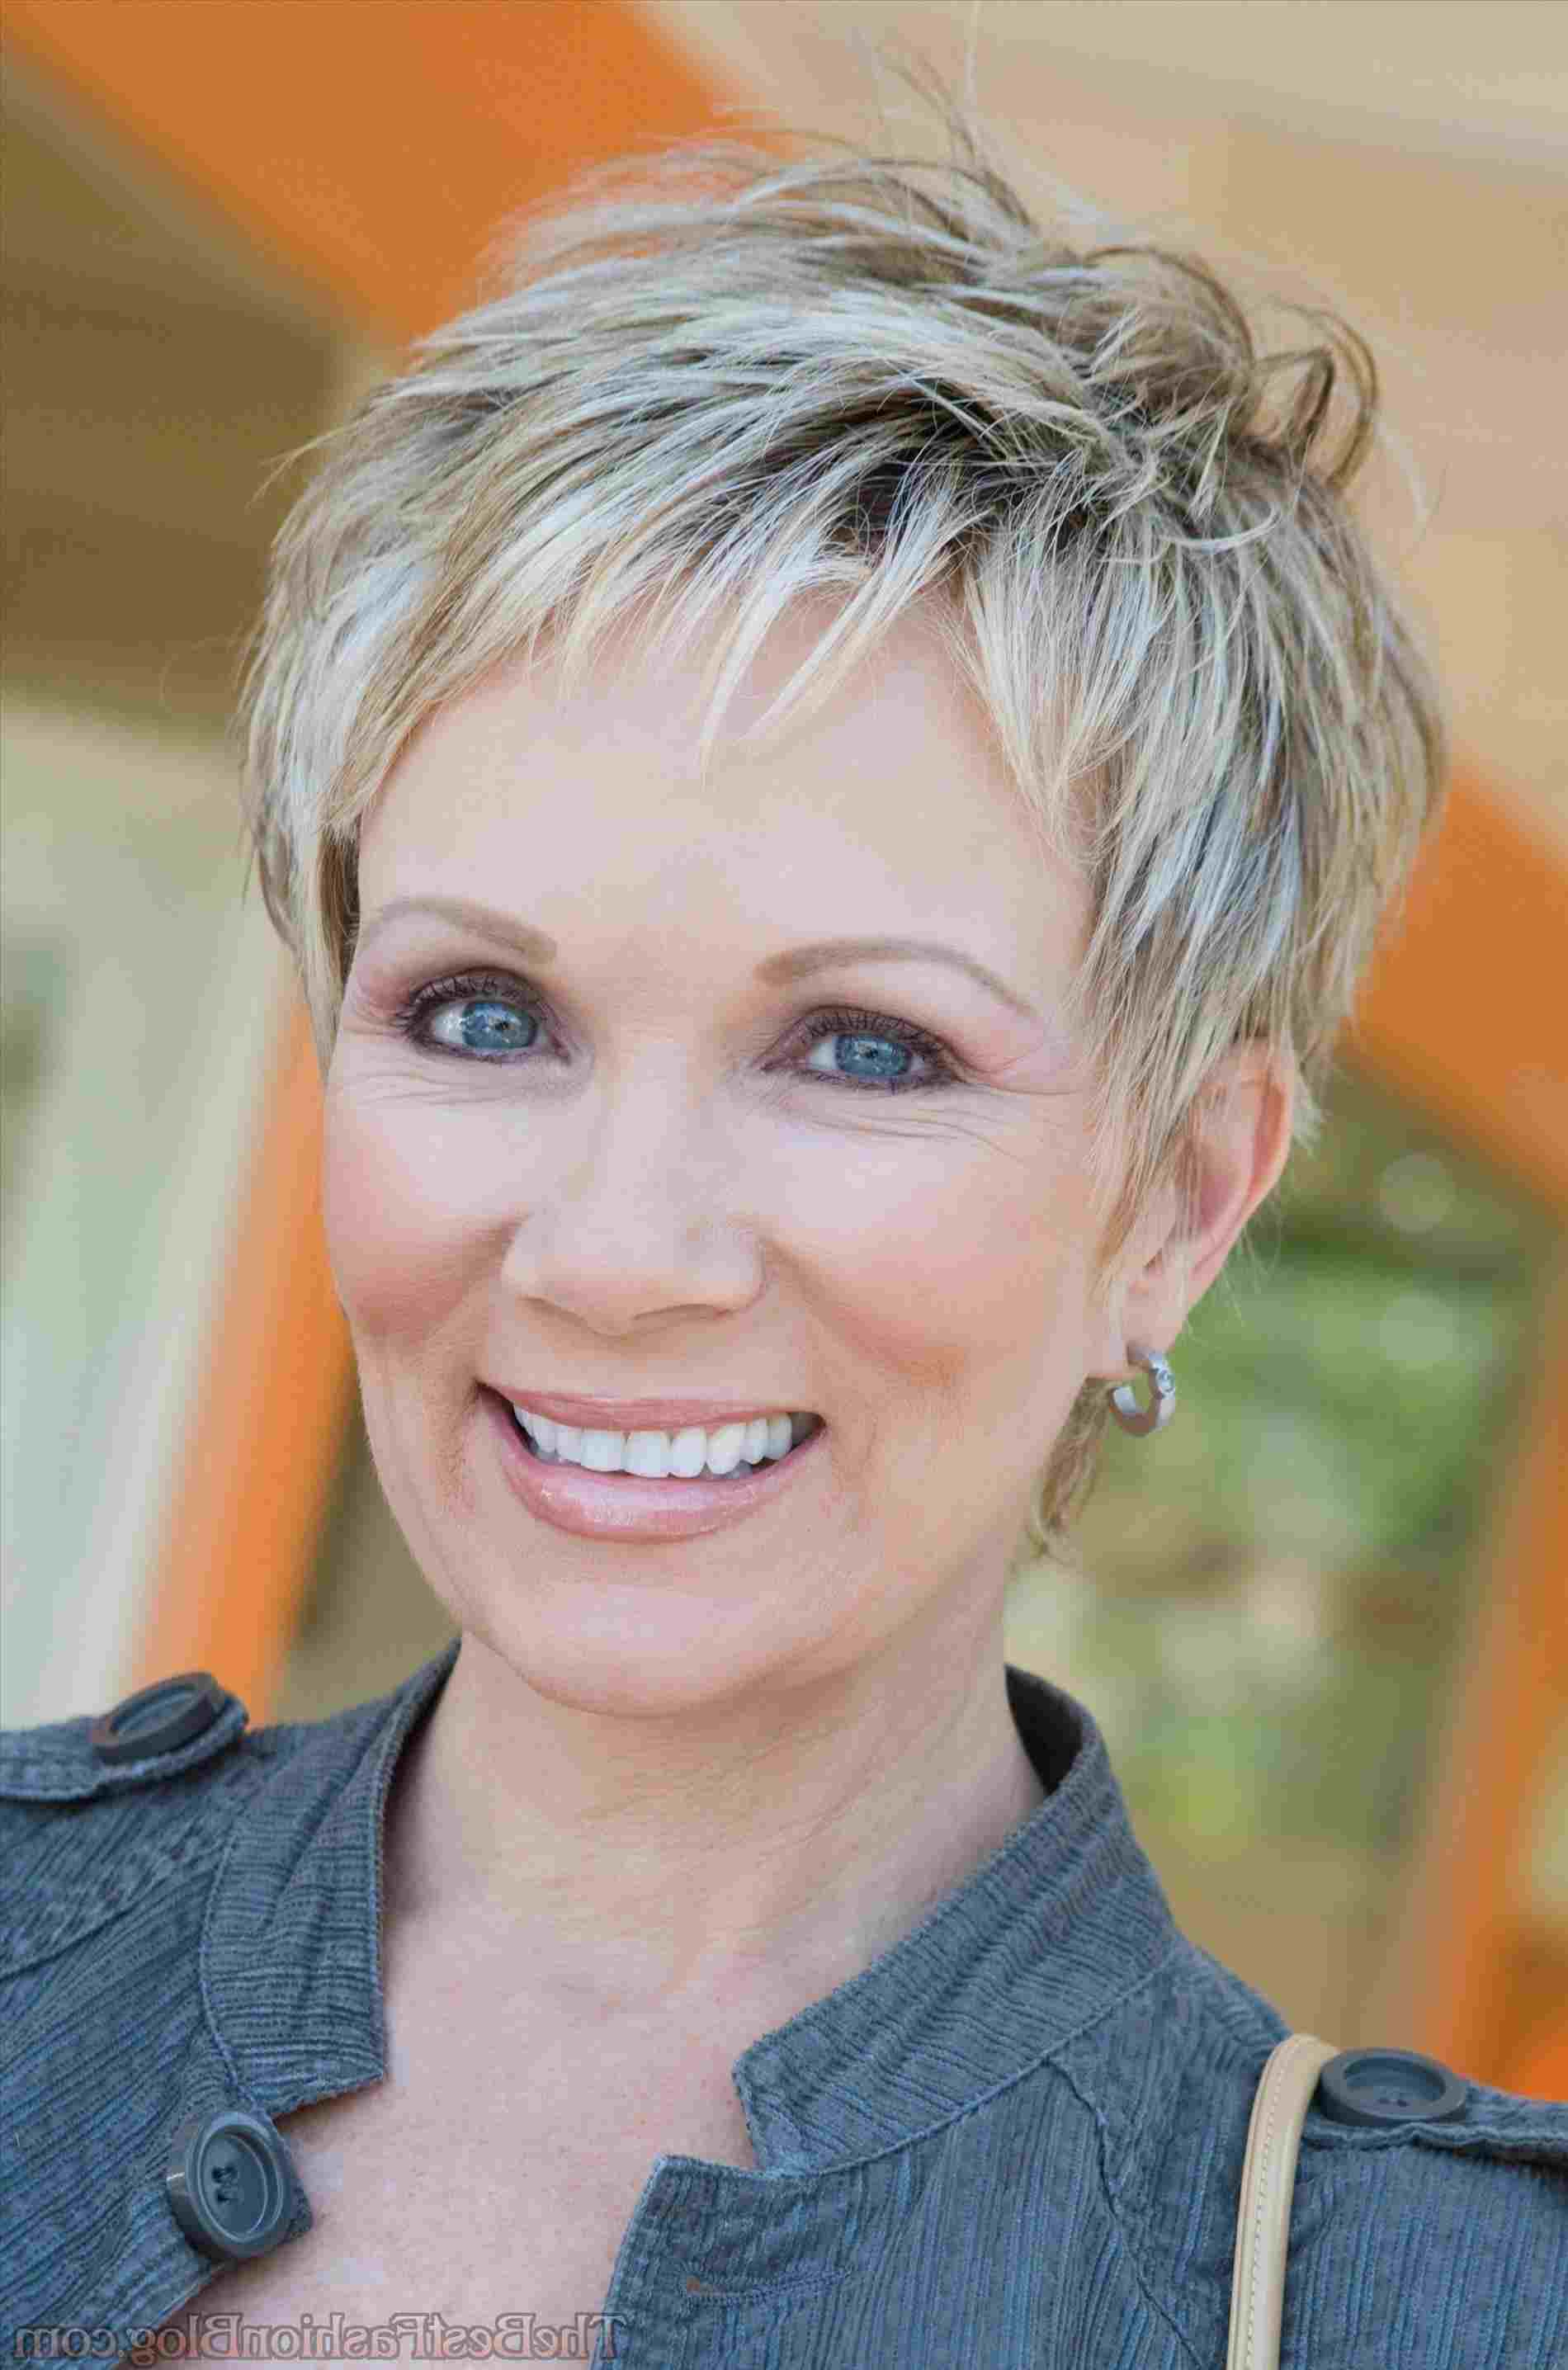 Thick Pixie Hairstyle for over 40 and Overweight Women 3 Thick-Pixie-Hairstyle-for-over-40-and-Overweight-Women-4